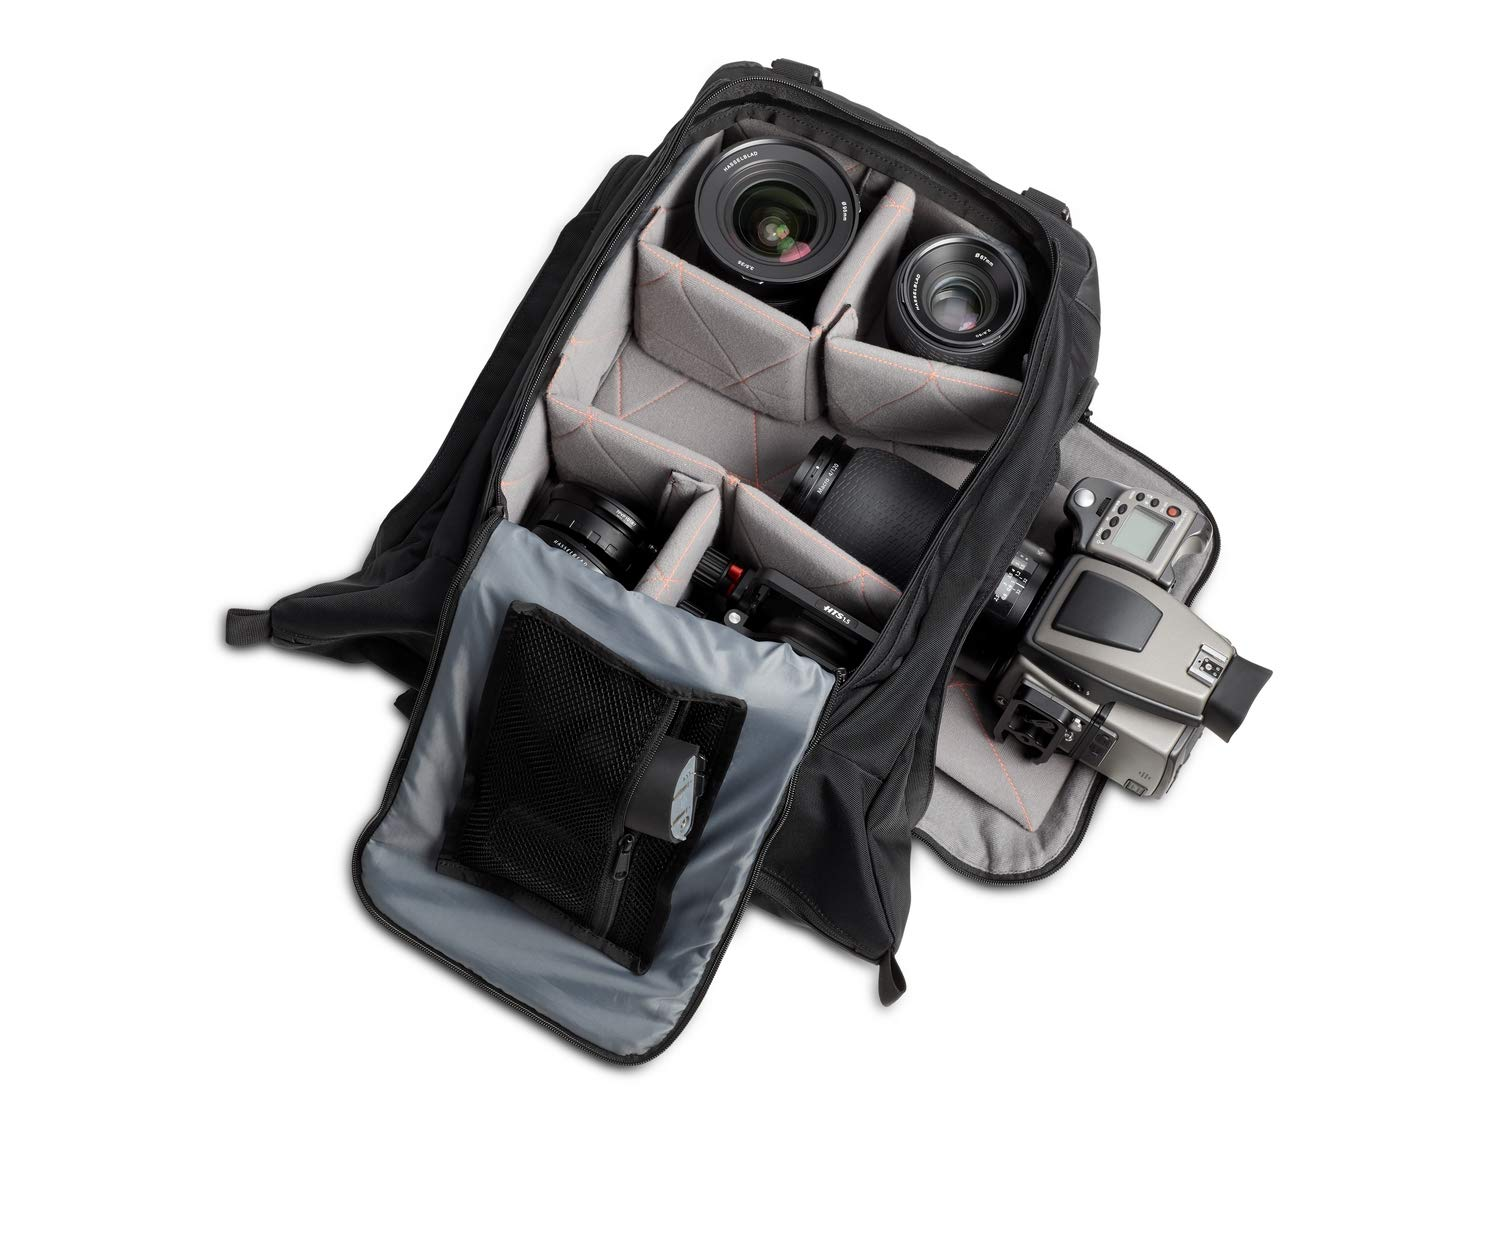 Timbuk2 Enthusiast Camera Backpack Glitch